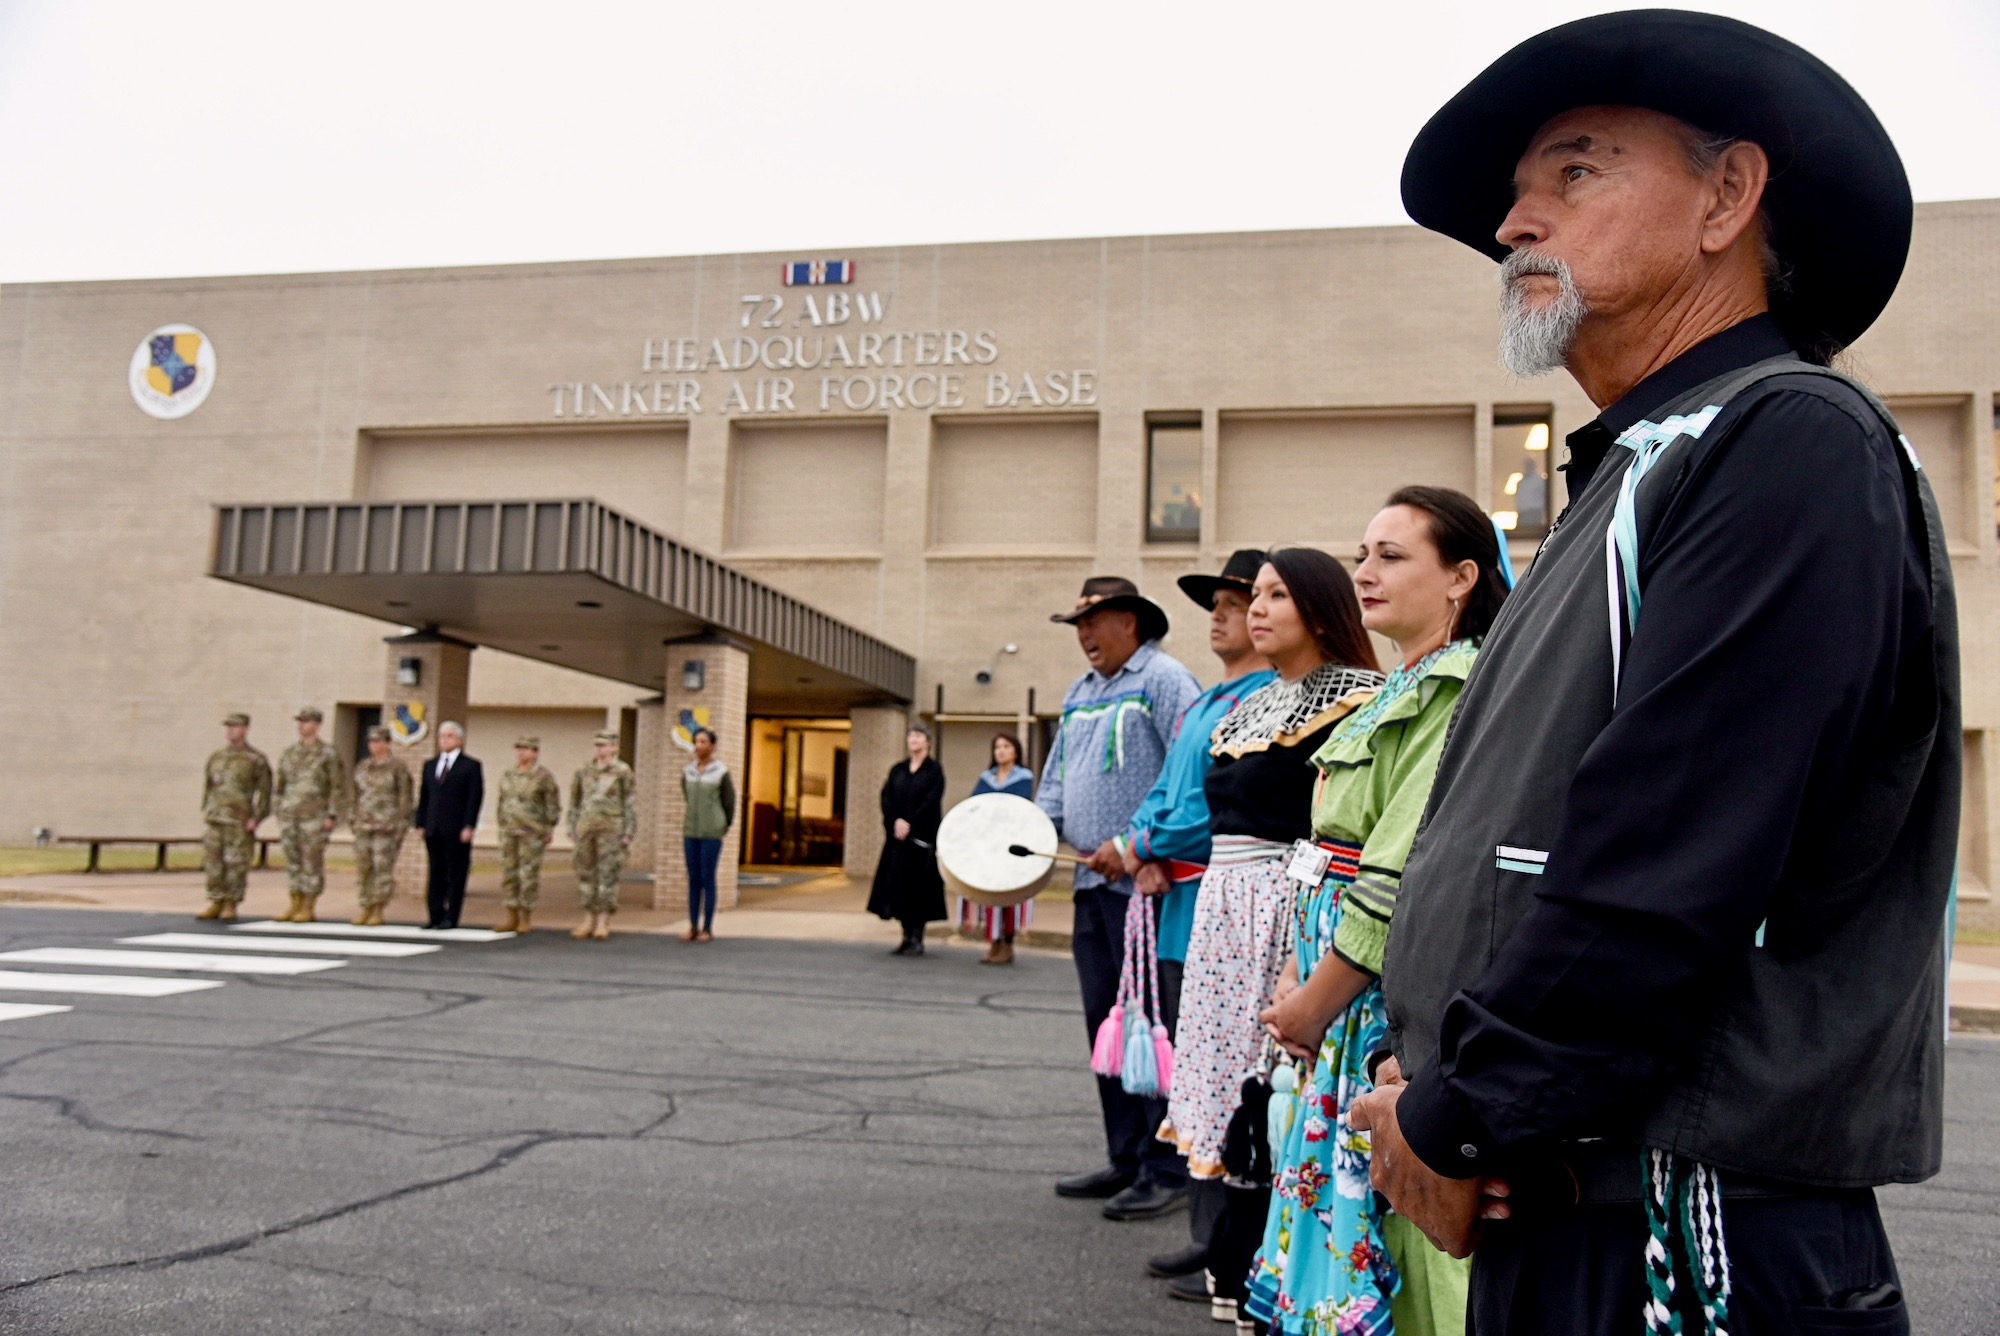 Native veterans legislation gaining steam on Capitol Hill